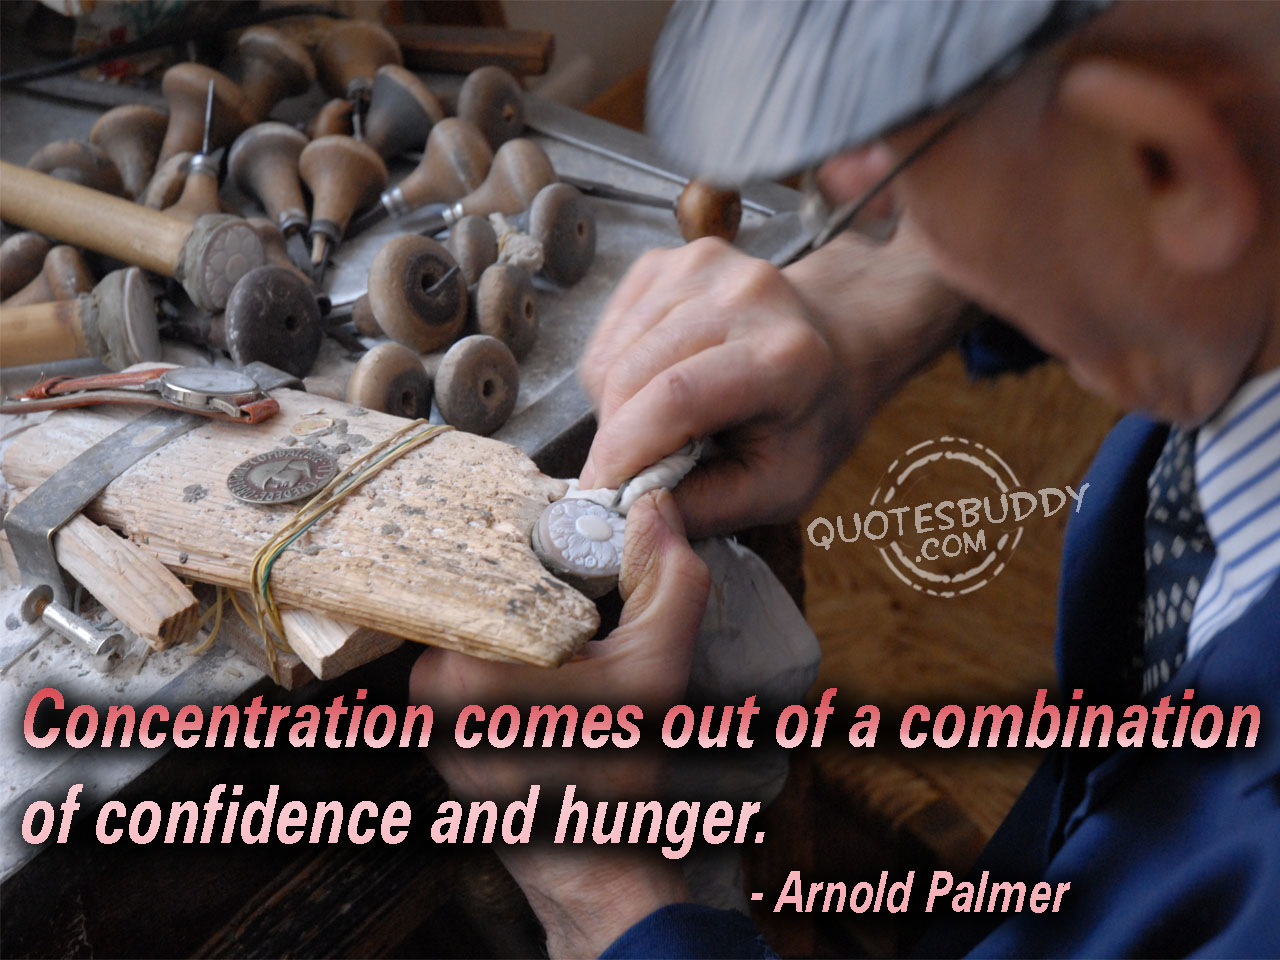 Concentration comes out of a combination of confidence and hunger. Arnold Palmer